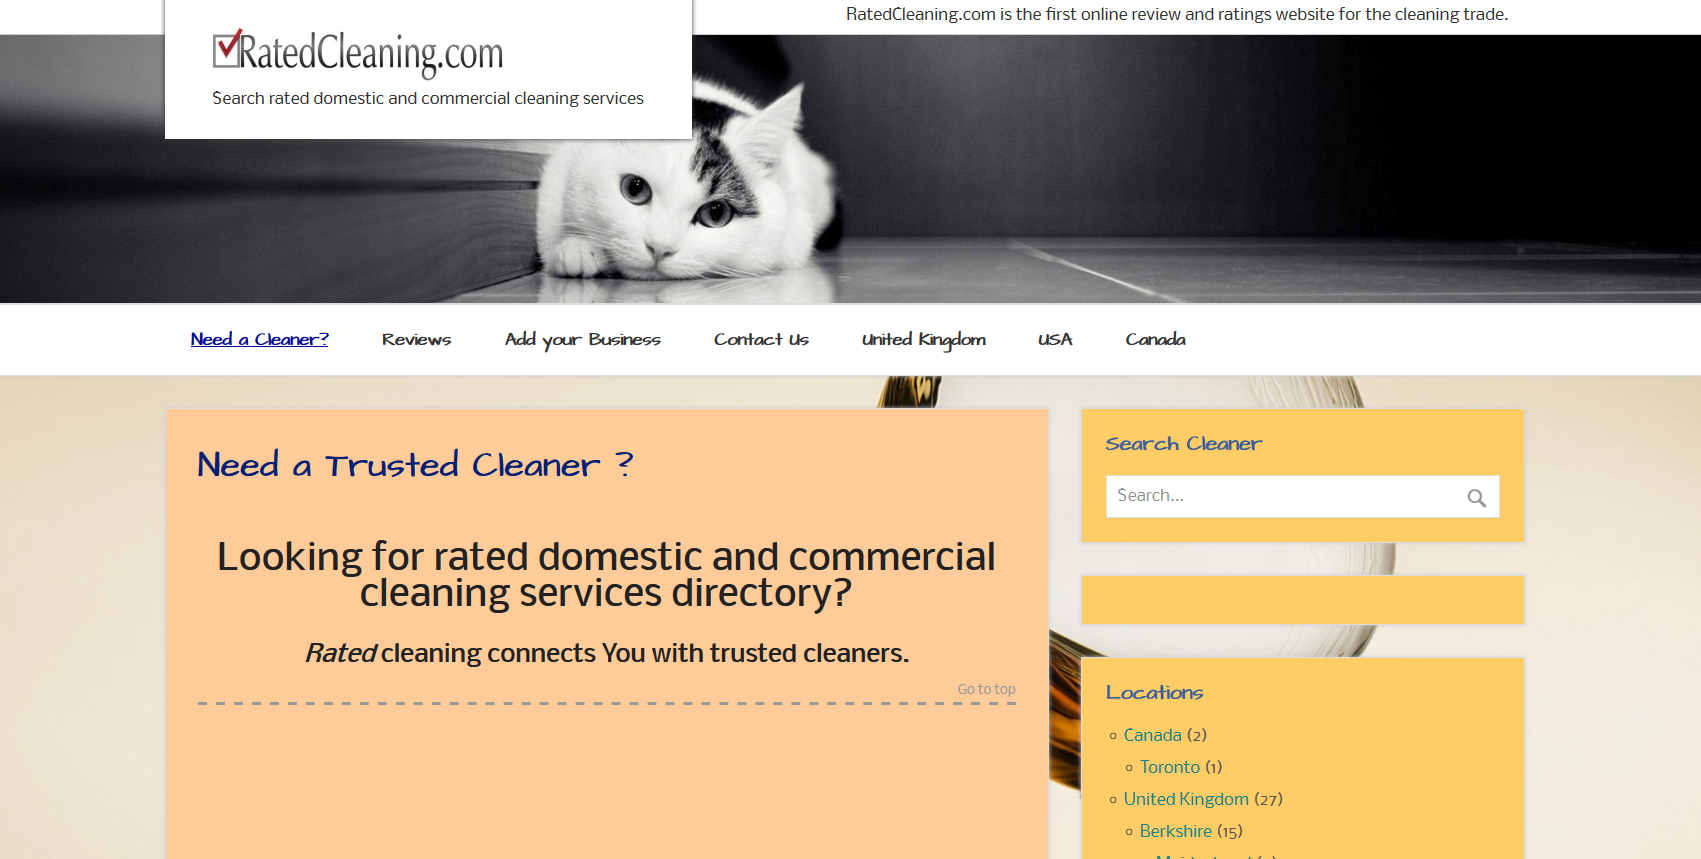 ratedcleaning.com